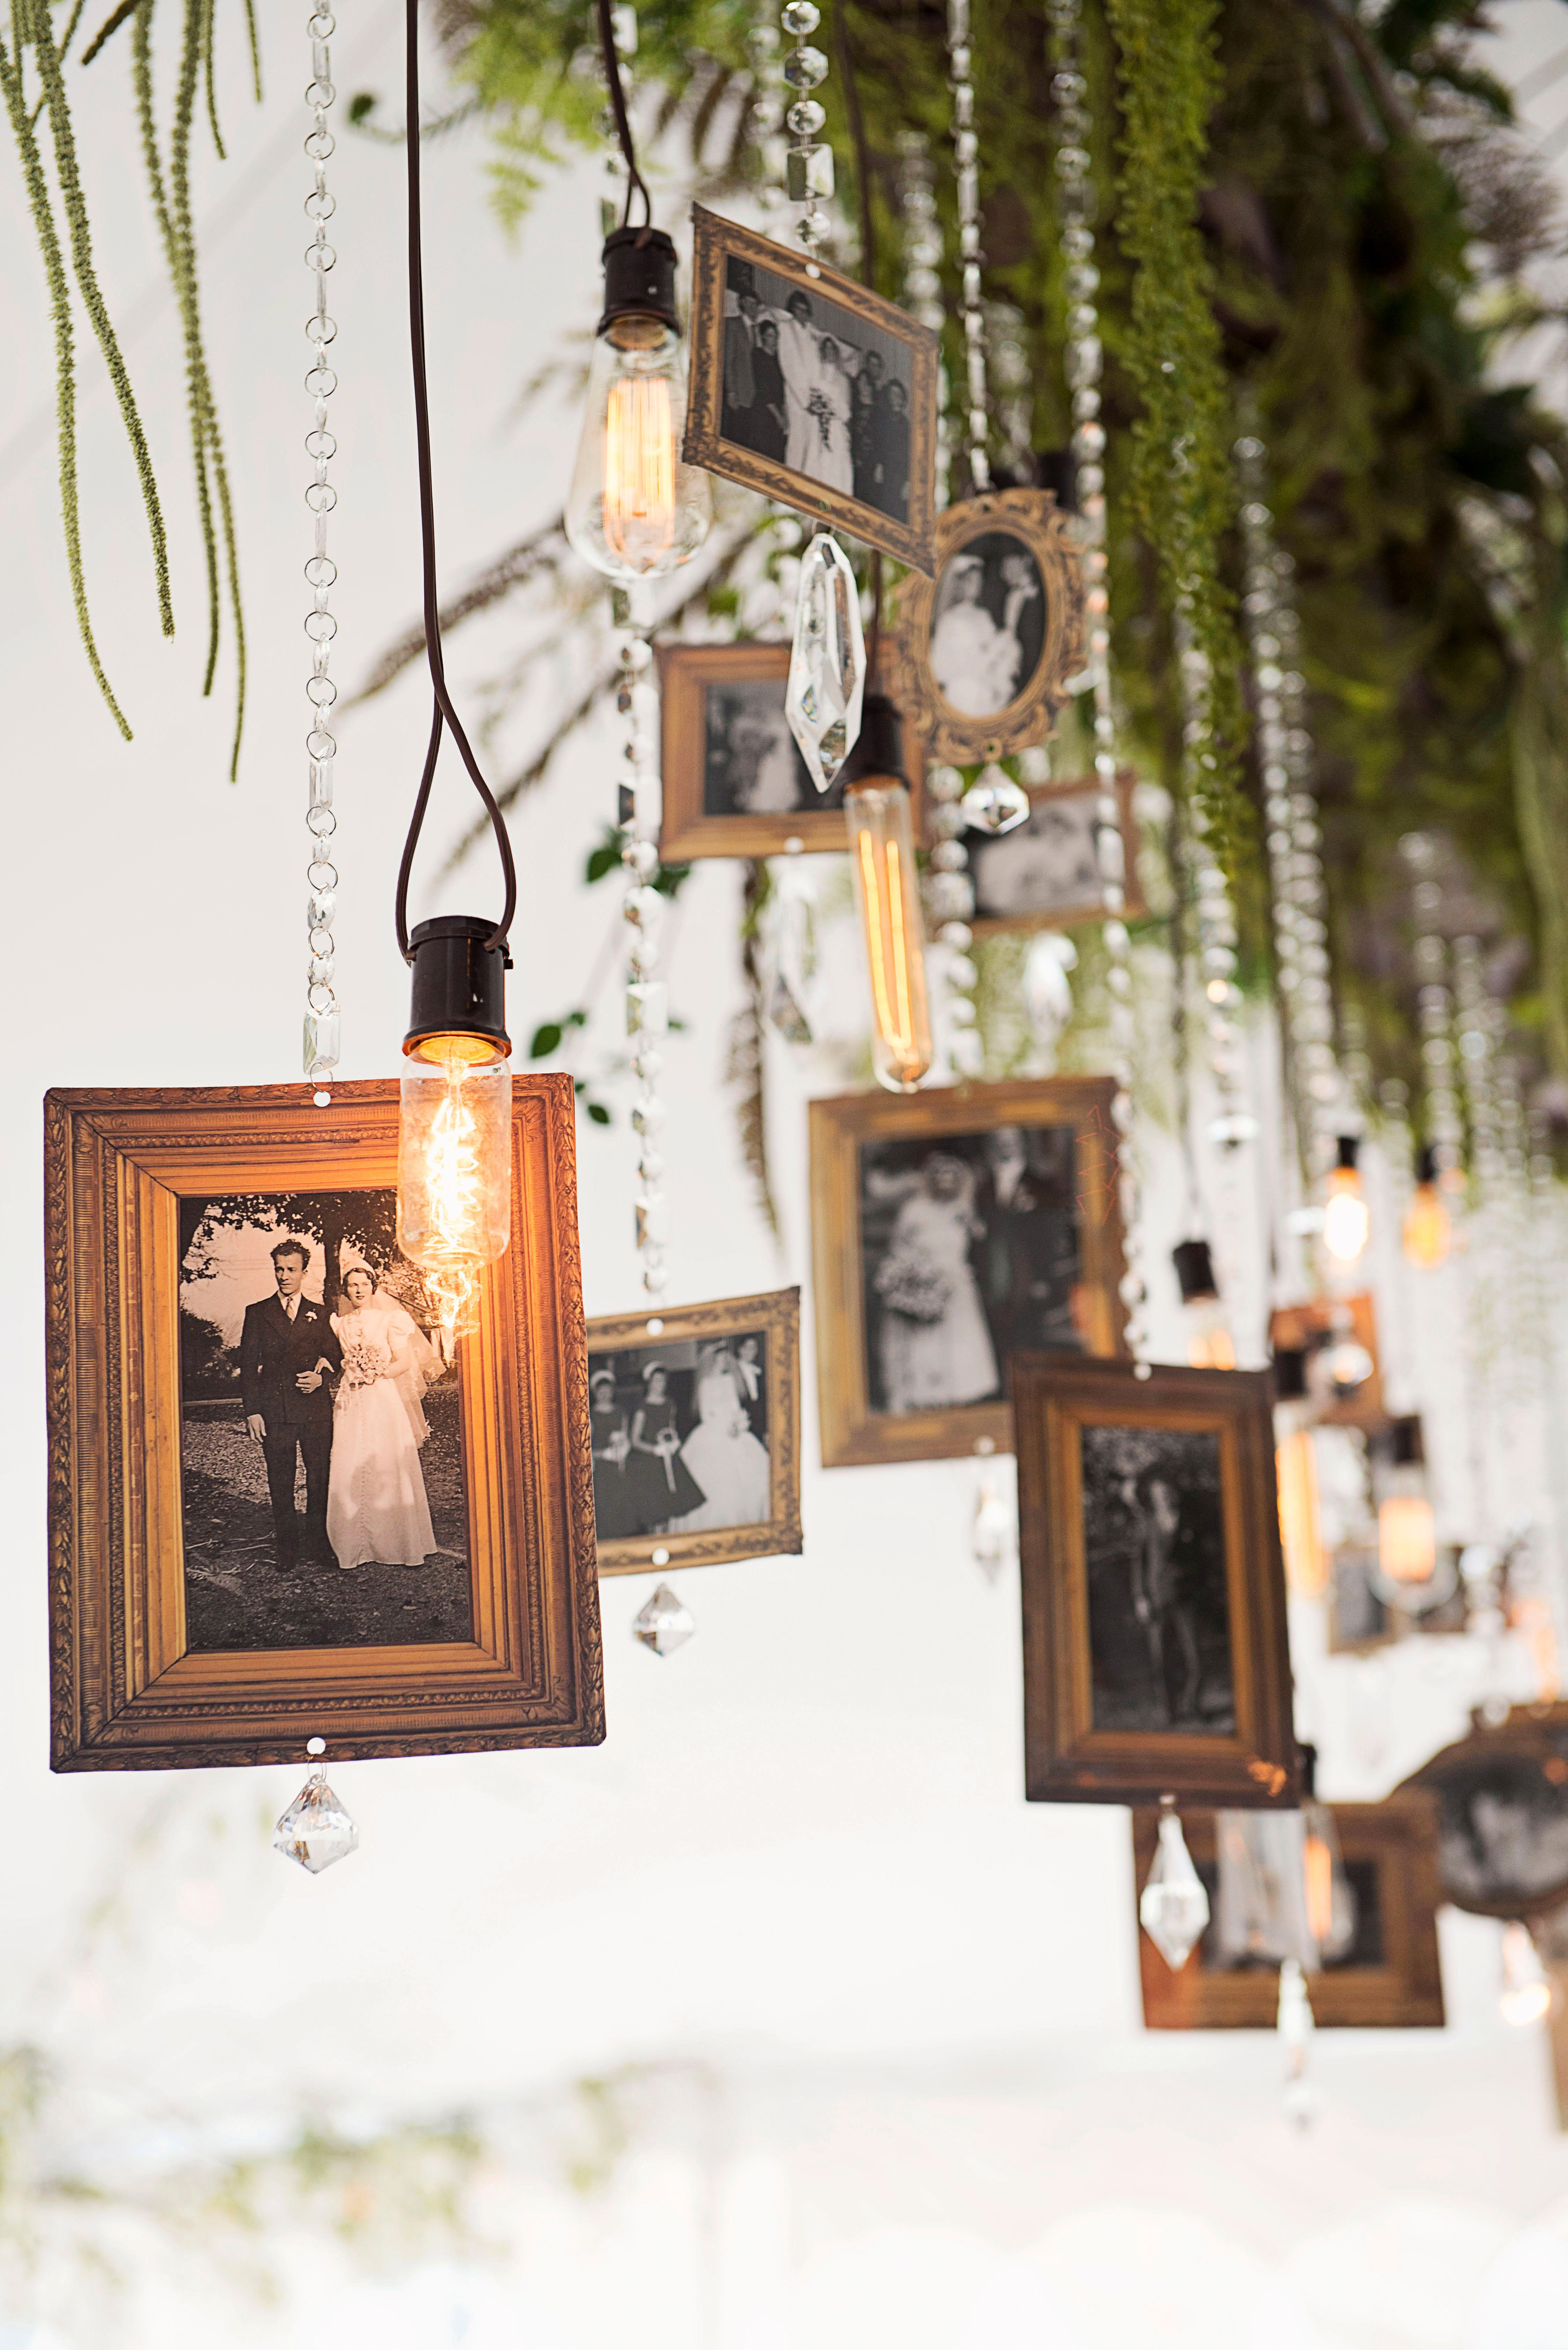 20 Personalized Wedding Ideas You'll Want to Copy